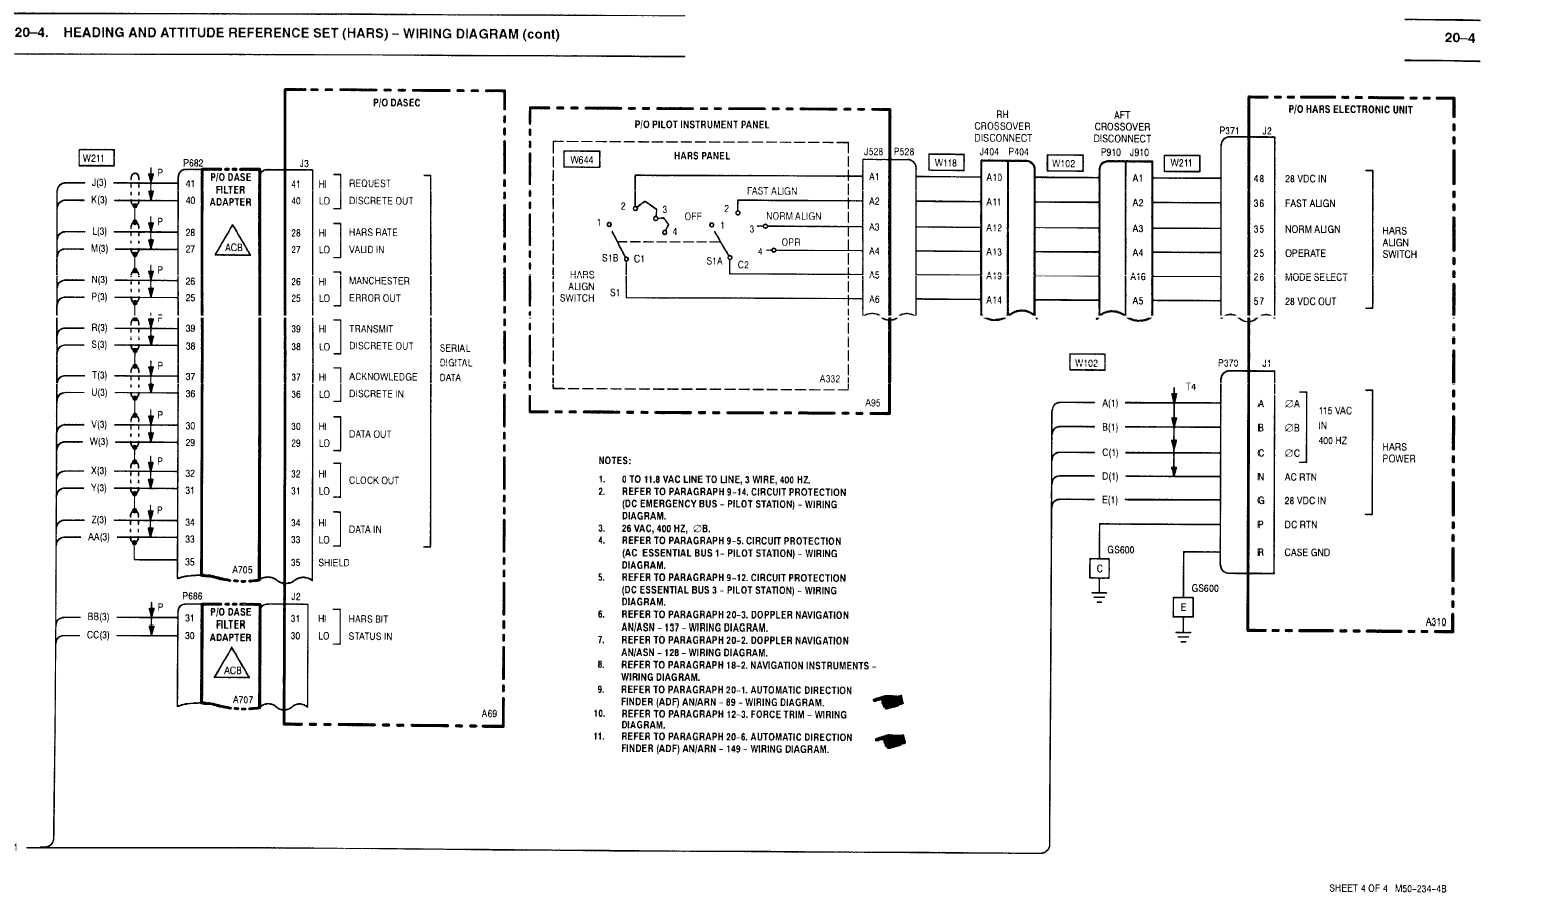 Altimeter Wiring Diagram Auto Electrical Single Coil Car Speakers Related With